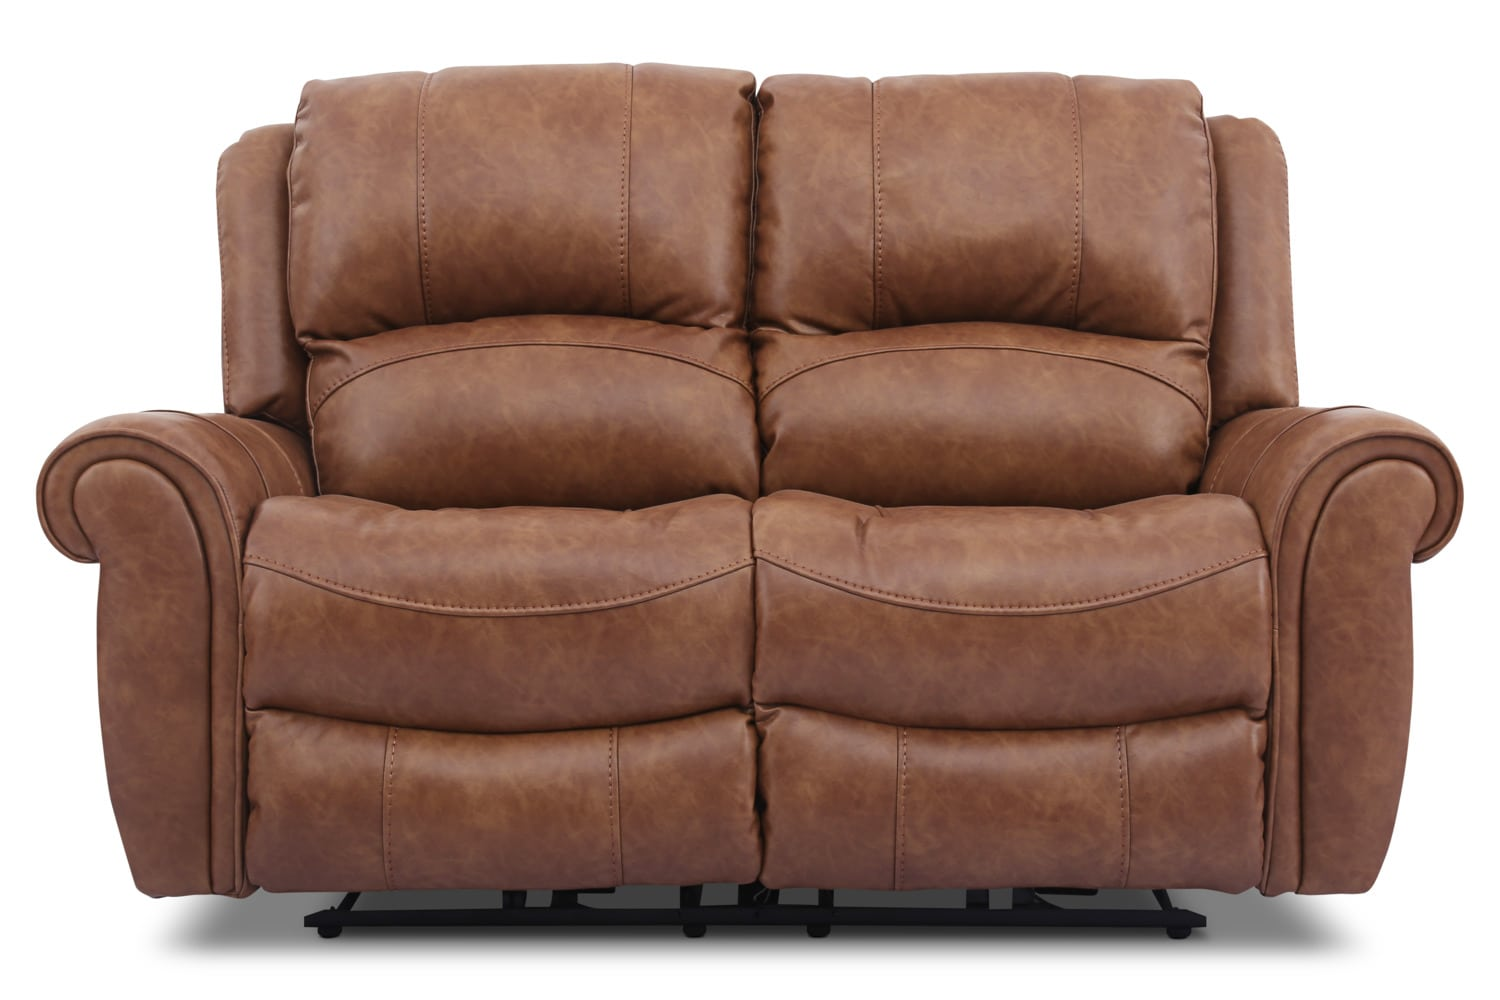 Living Room Furniture - Kane Leather-Look Fabric Power Reclining Loveseat – Saddle